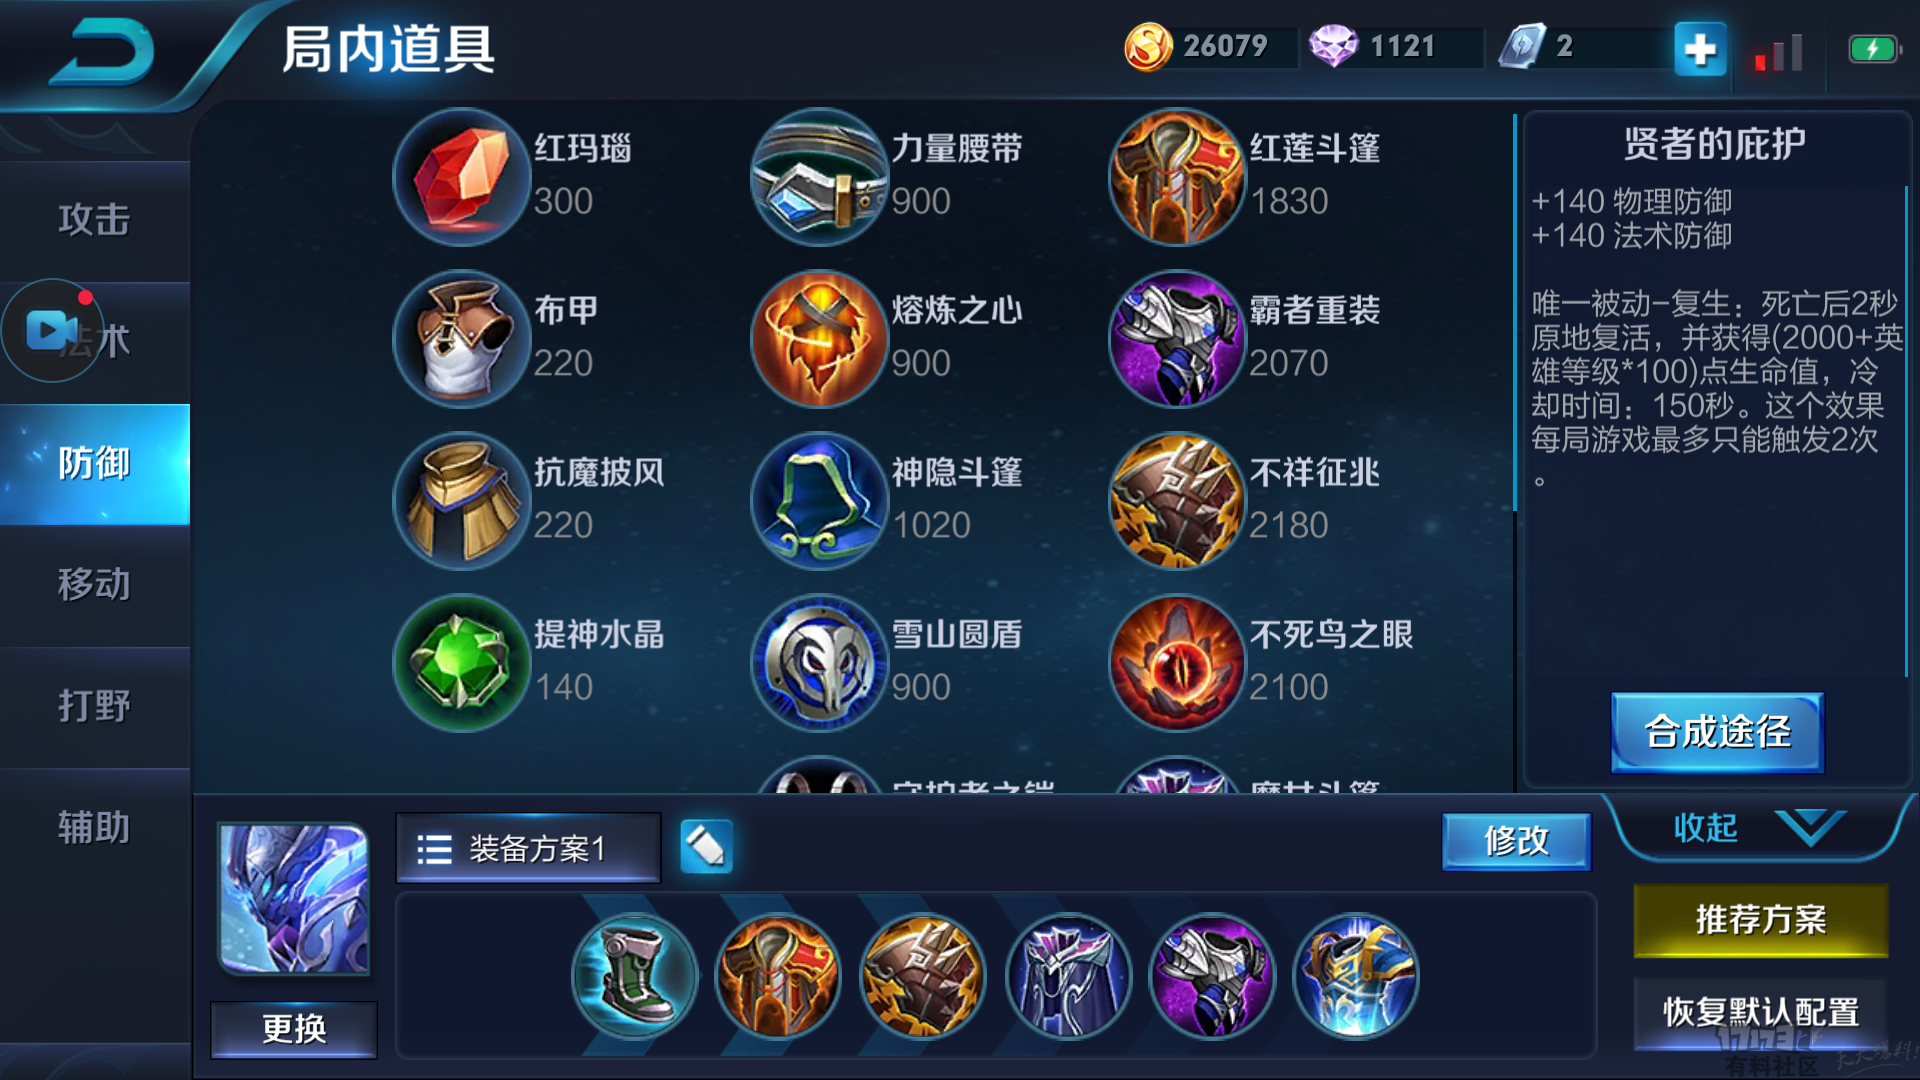 Screenshot_2018-06-23-18-44-41-384_com.tencent.tm.png